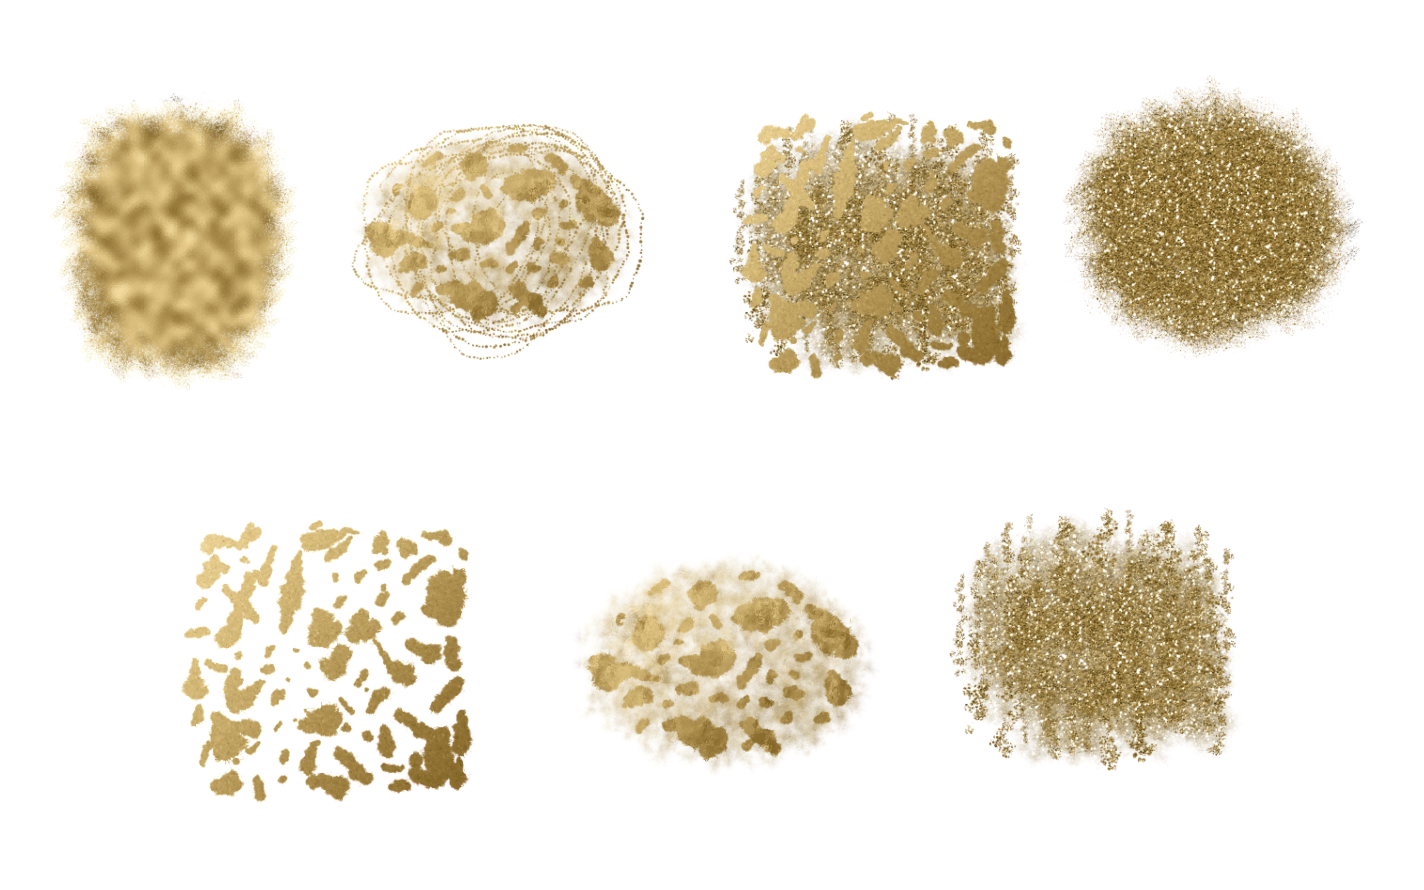 Gold Glitter Backgrounds, Gold Design PNG Elements example image 2